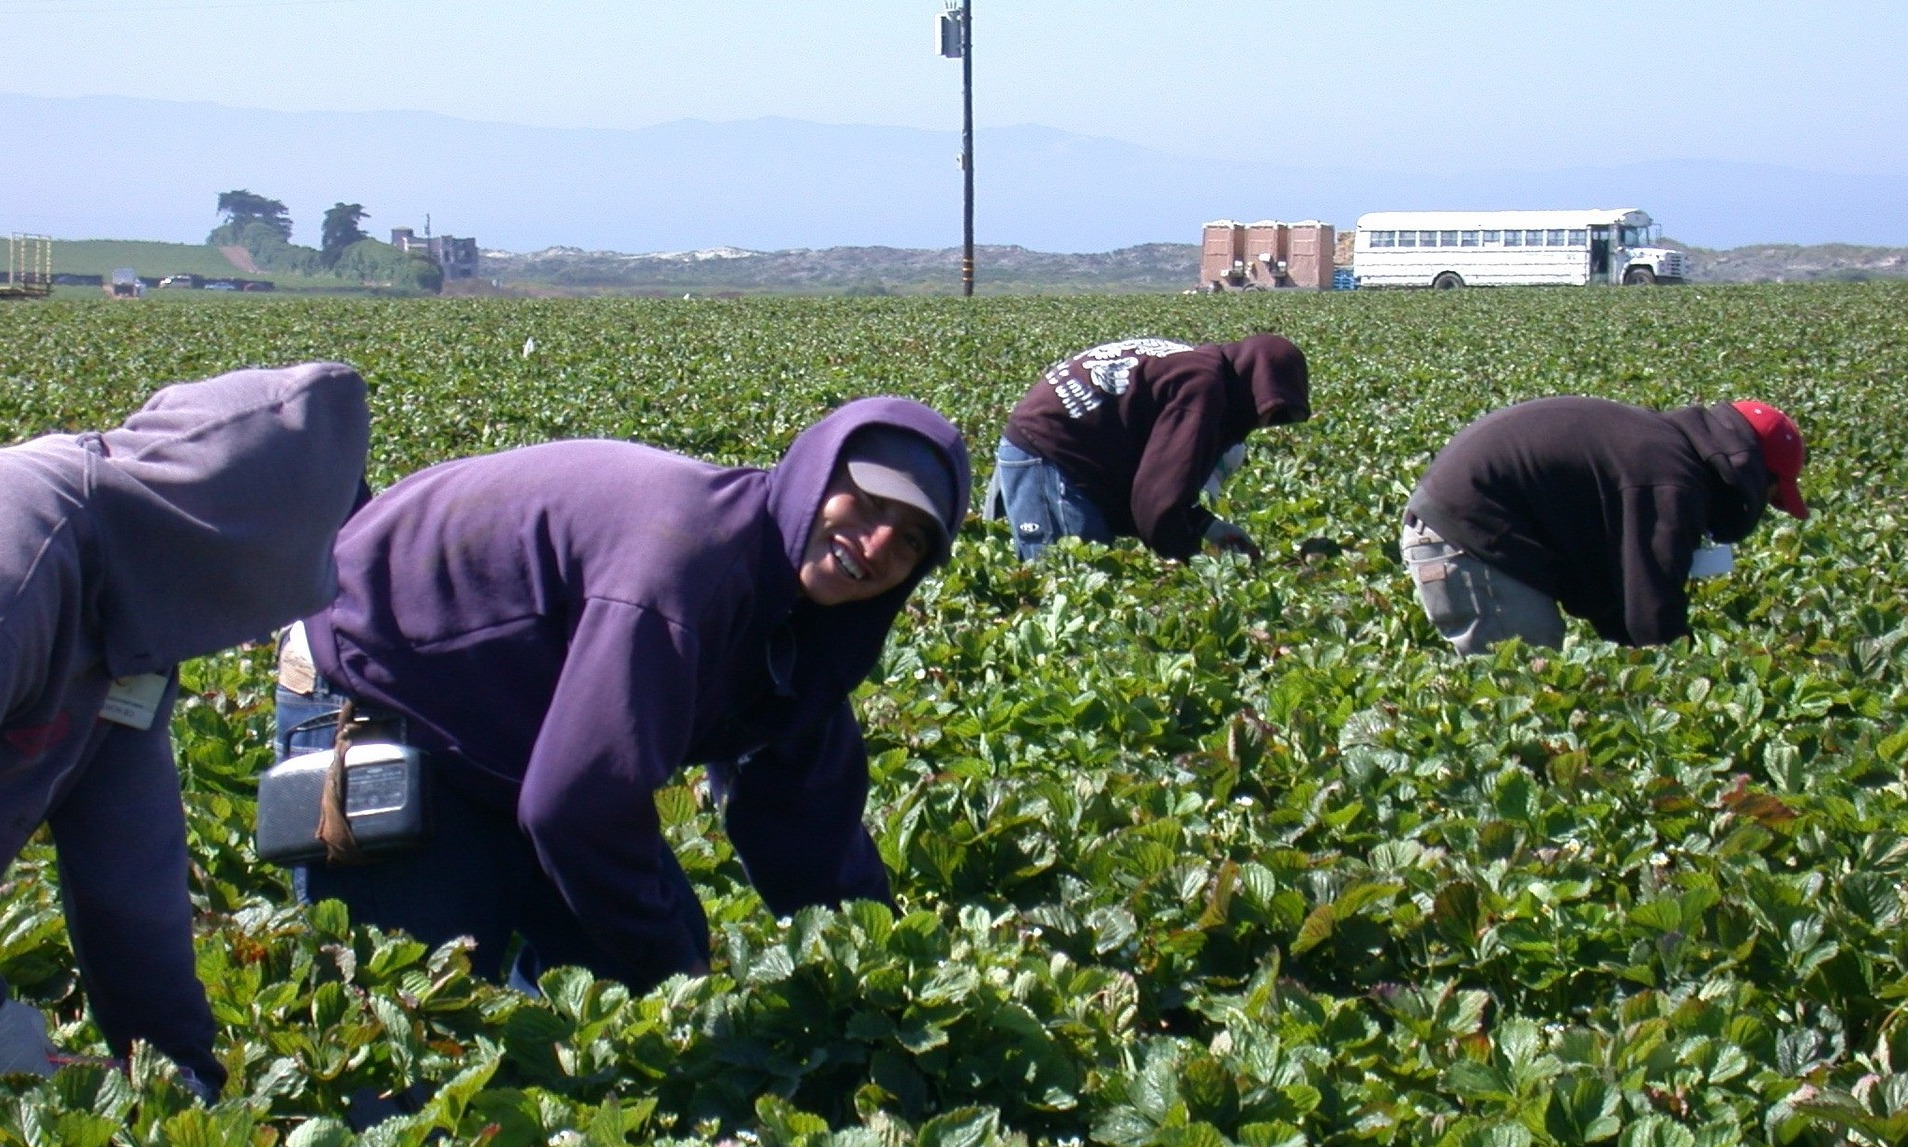 Young farmworkers working in field